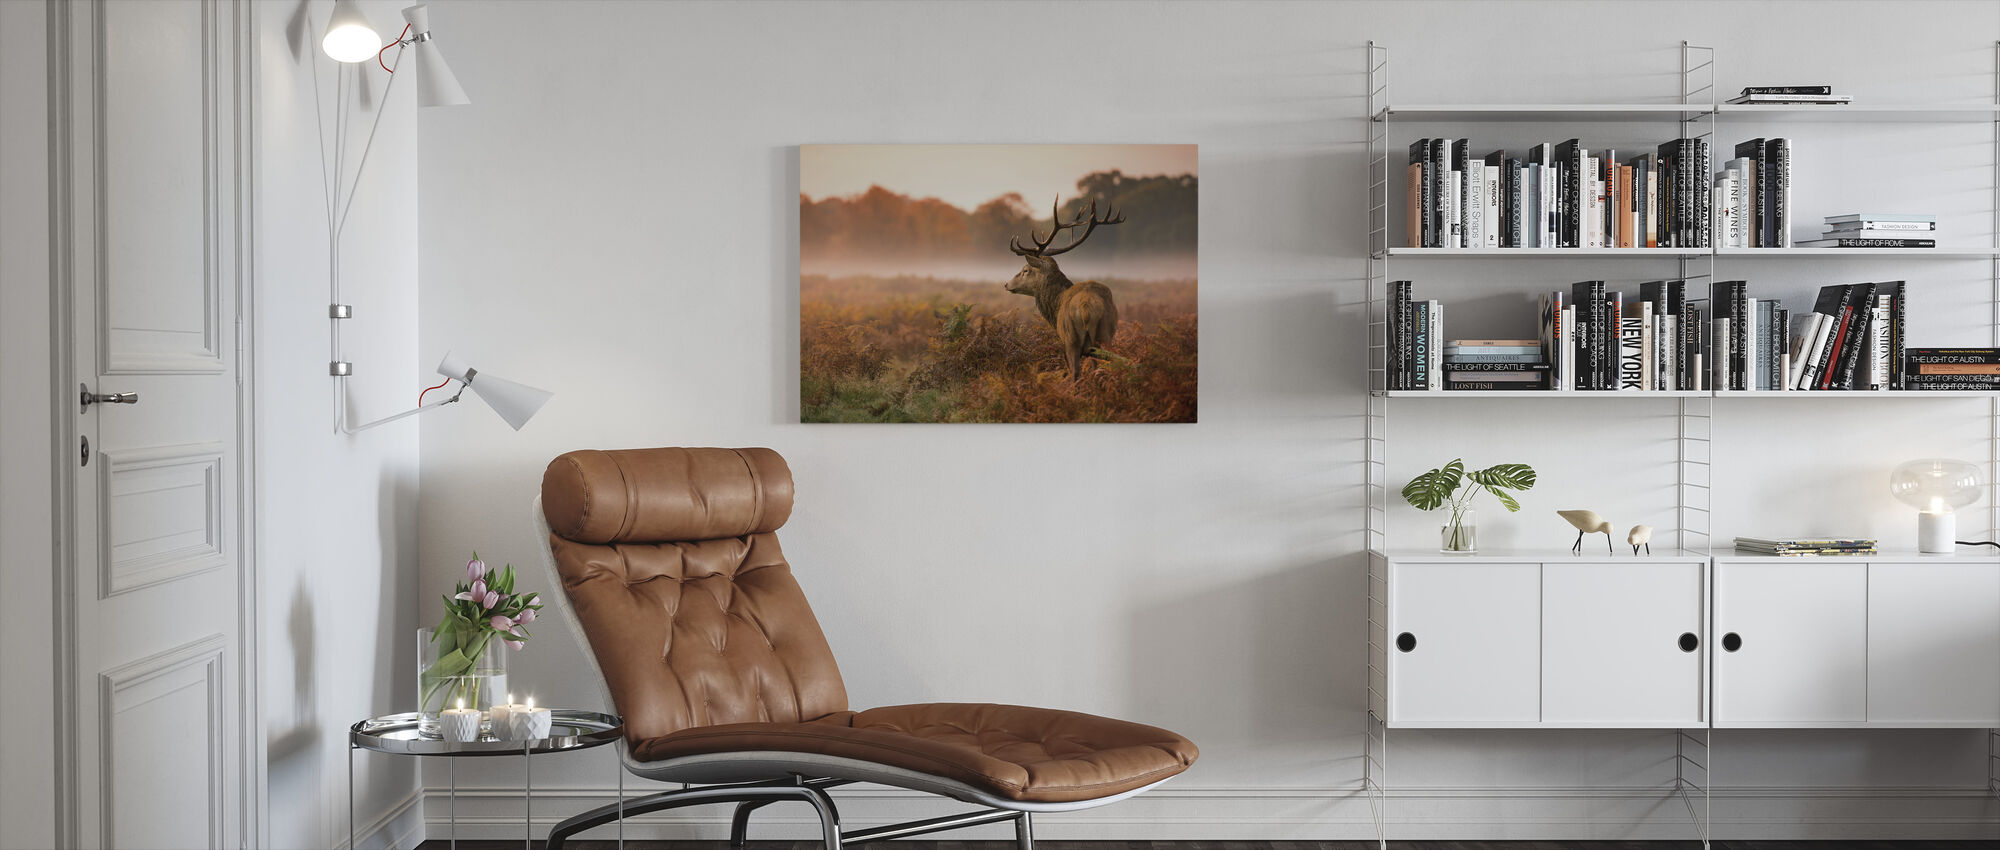 Red Deer Stag - Canvas print - Living Room